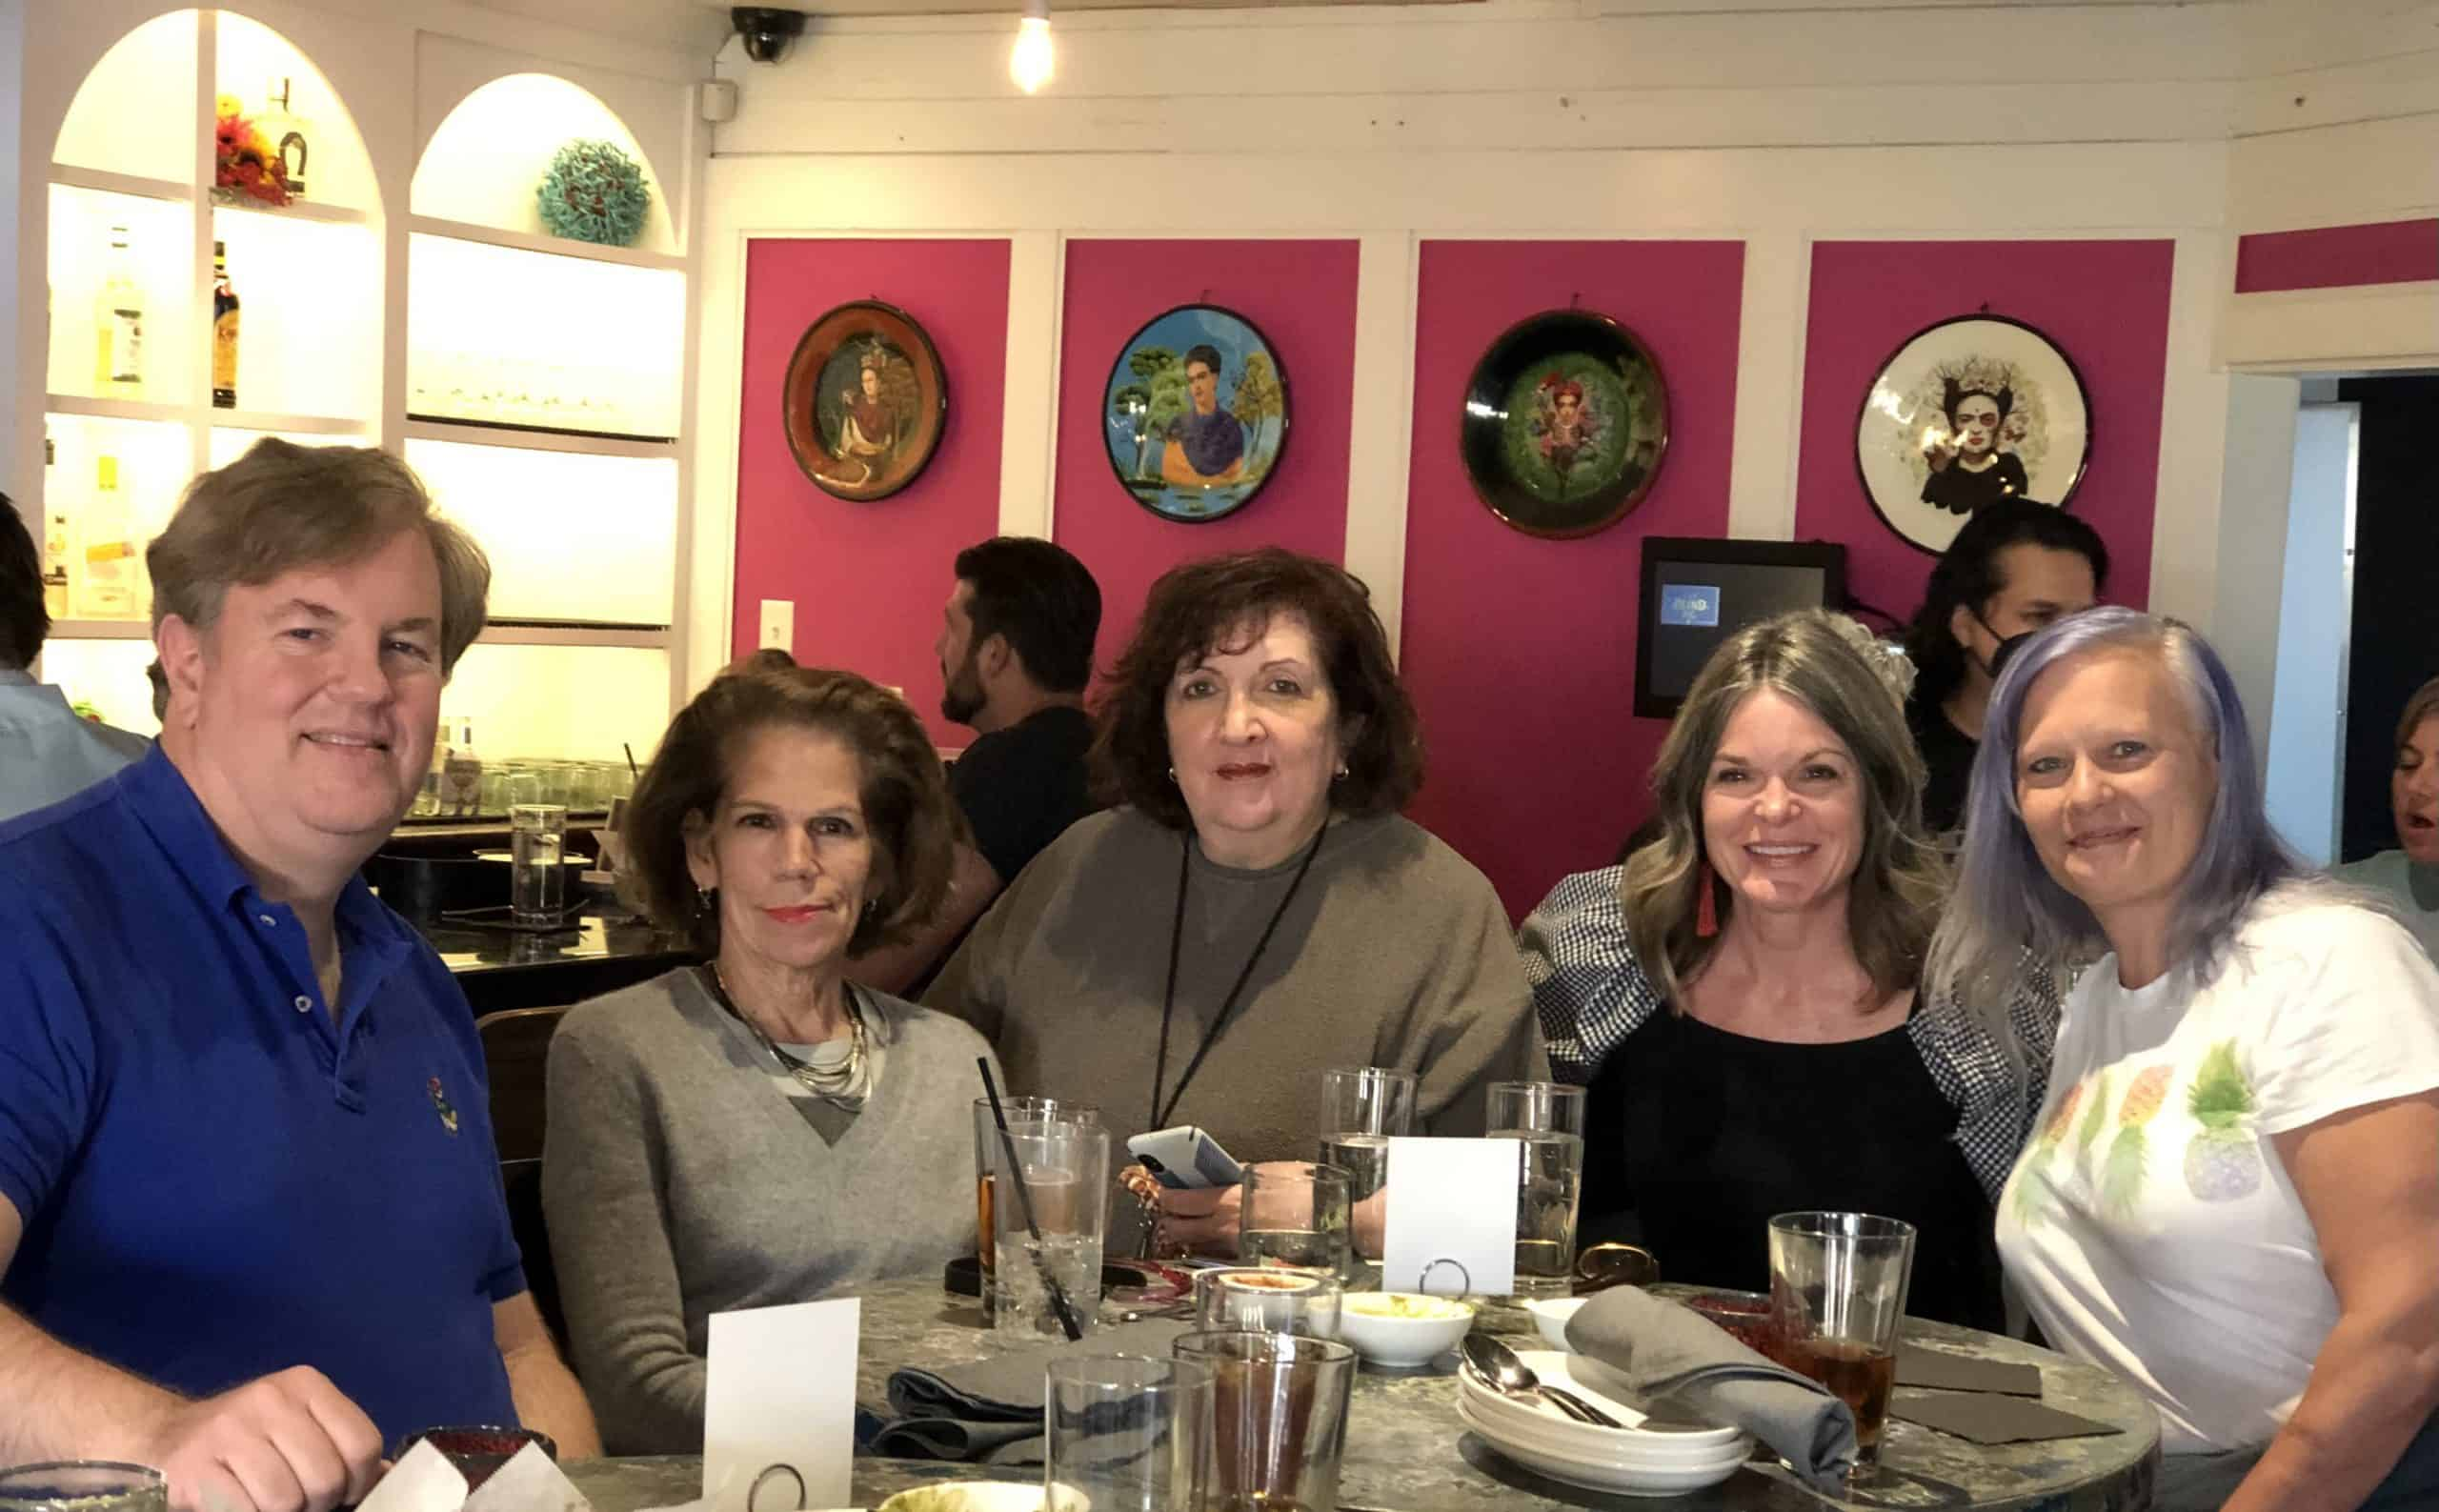 We enjoy our biannual luncheons, meeting new staff members and catching up with old ones.